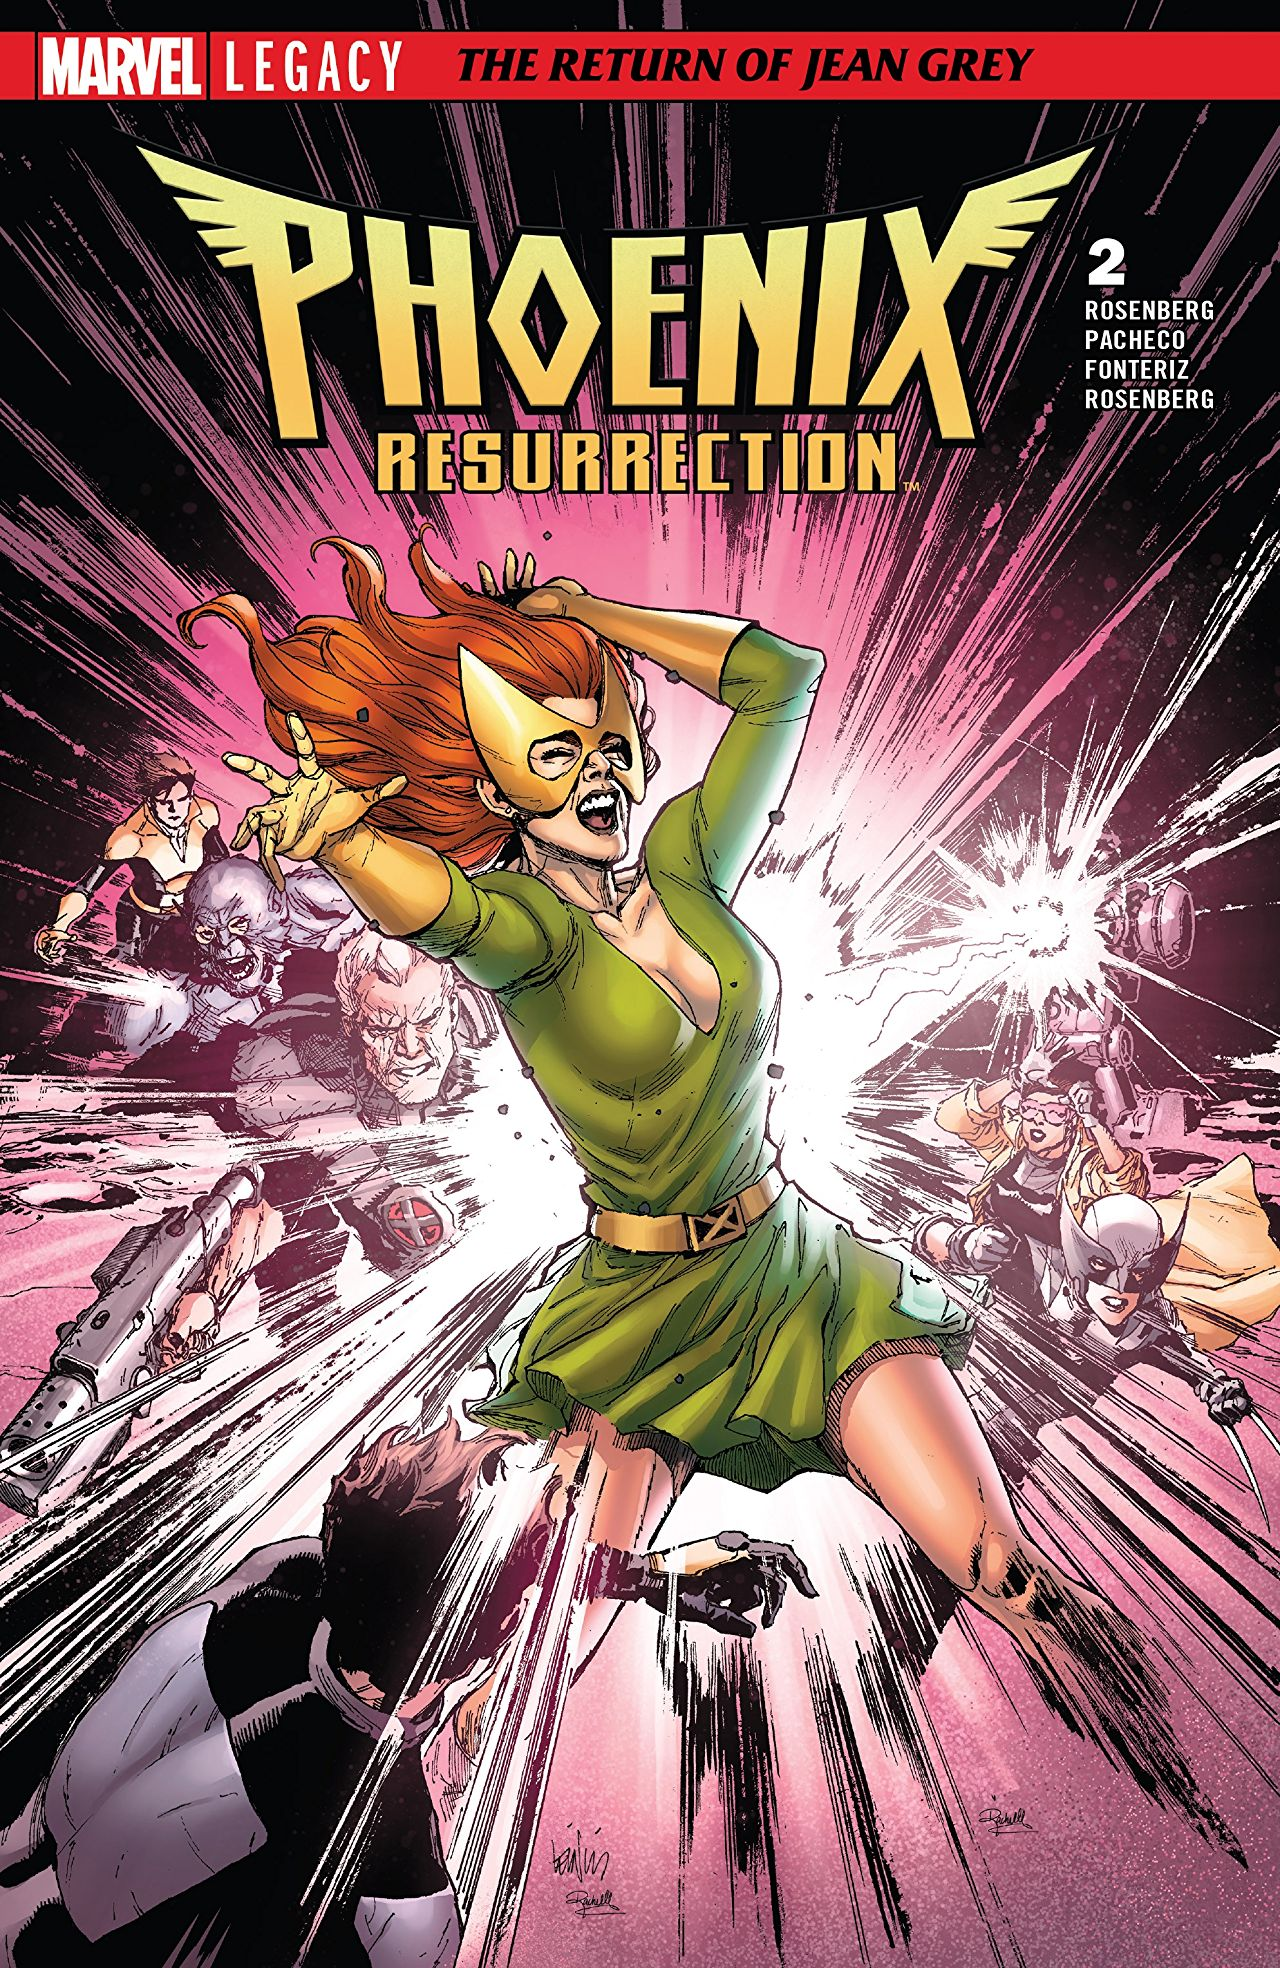 Phoenix Resurrection: The Return of Jean Grey #2 Review